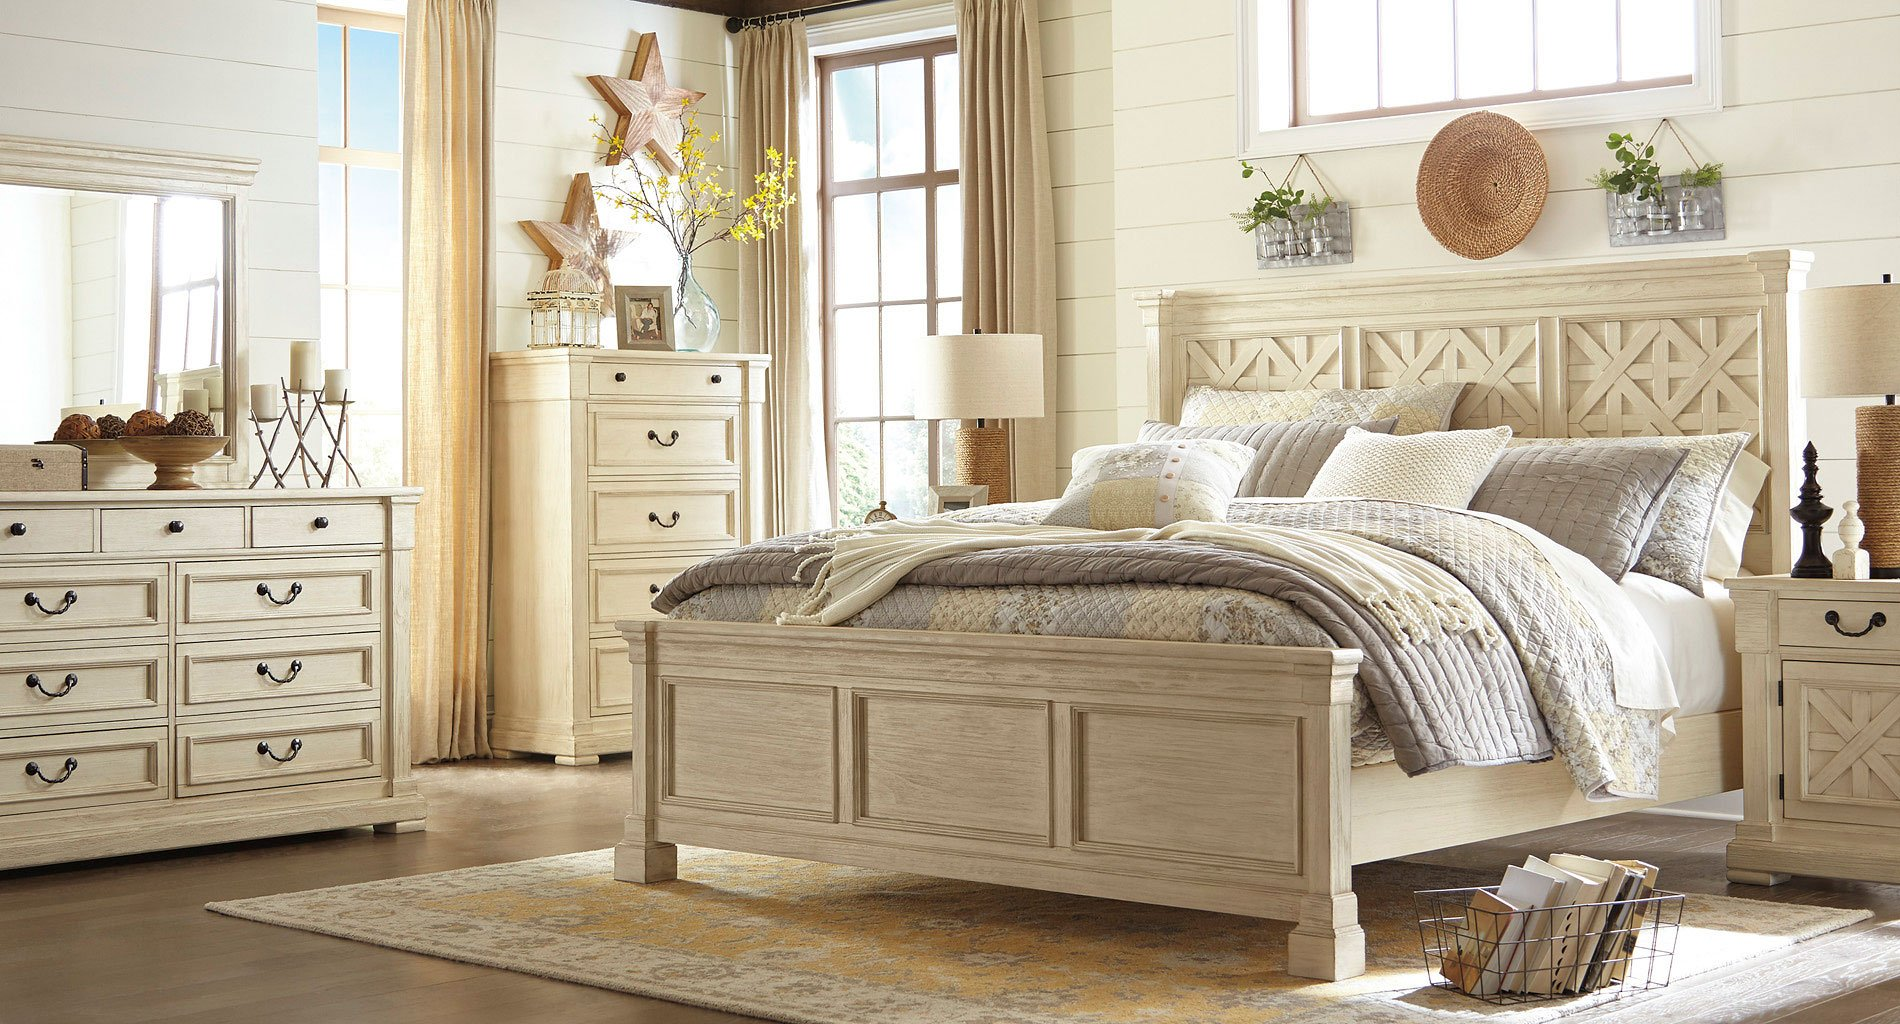 Bolanburg Panel Bedroom Set Signature Design, 4 Reviews